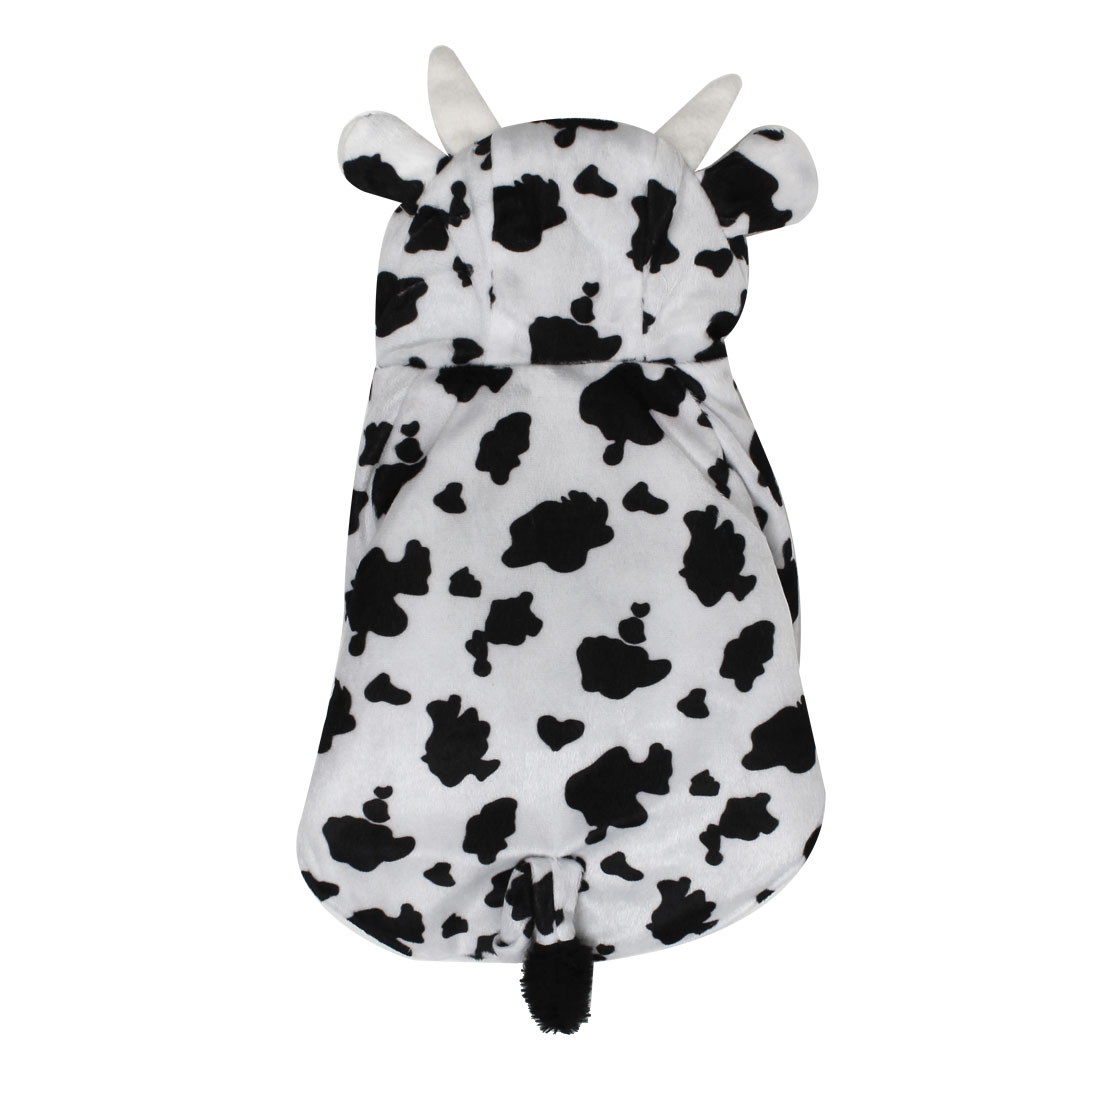 Cows Style Pet Dog Puppy Cosplay Hooded Coat Clothes Costume Black White Size XL